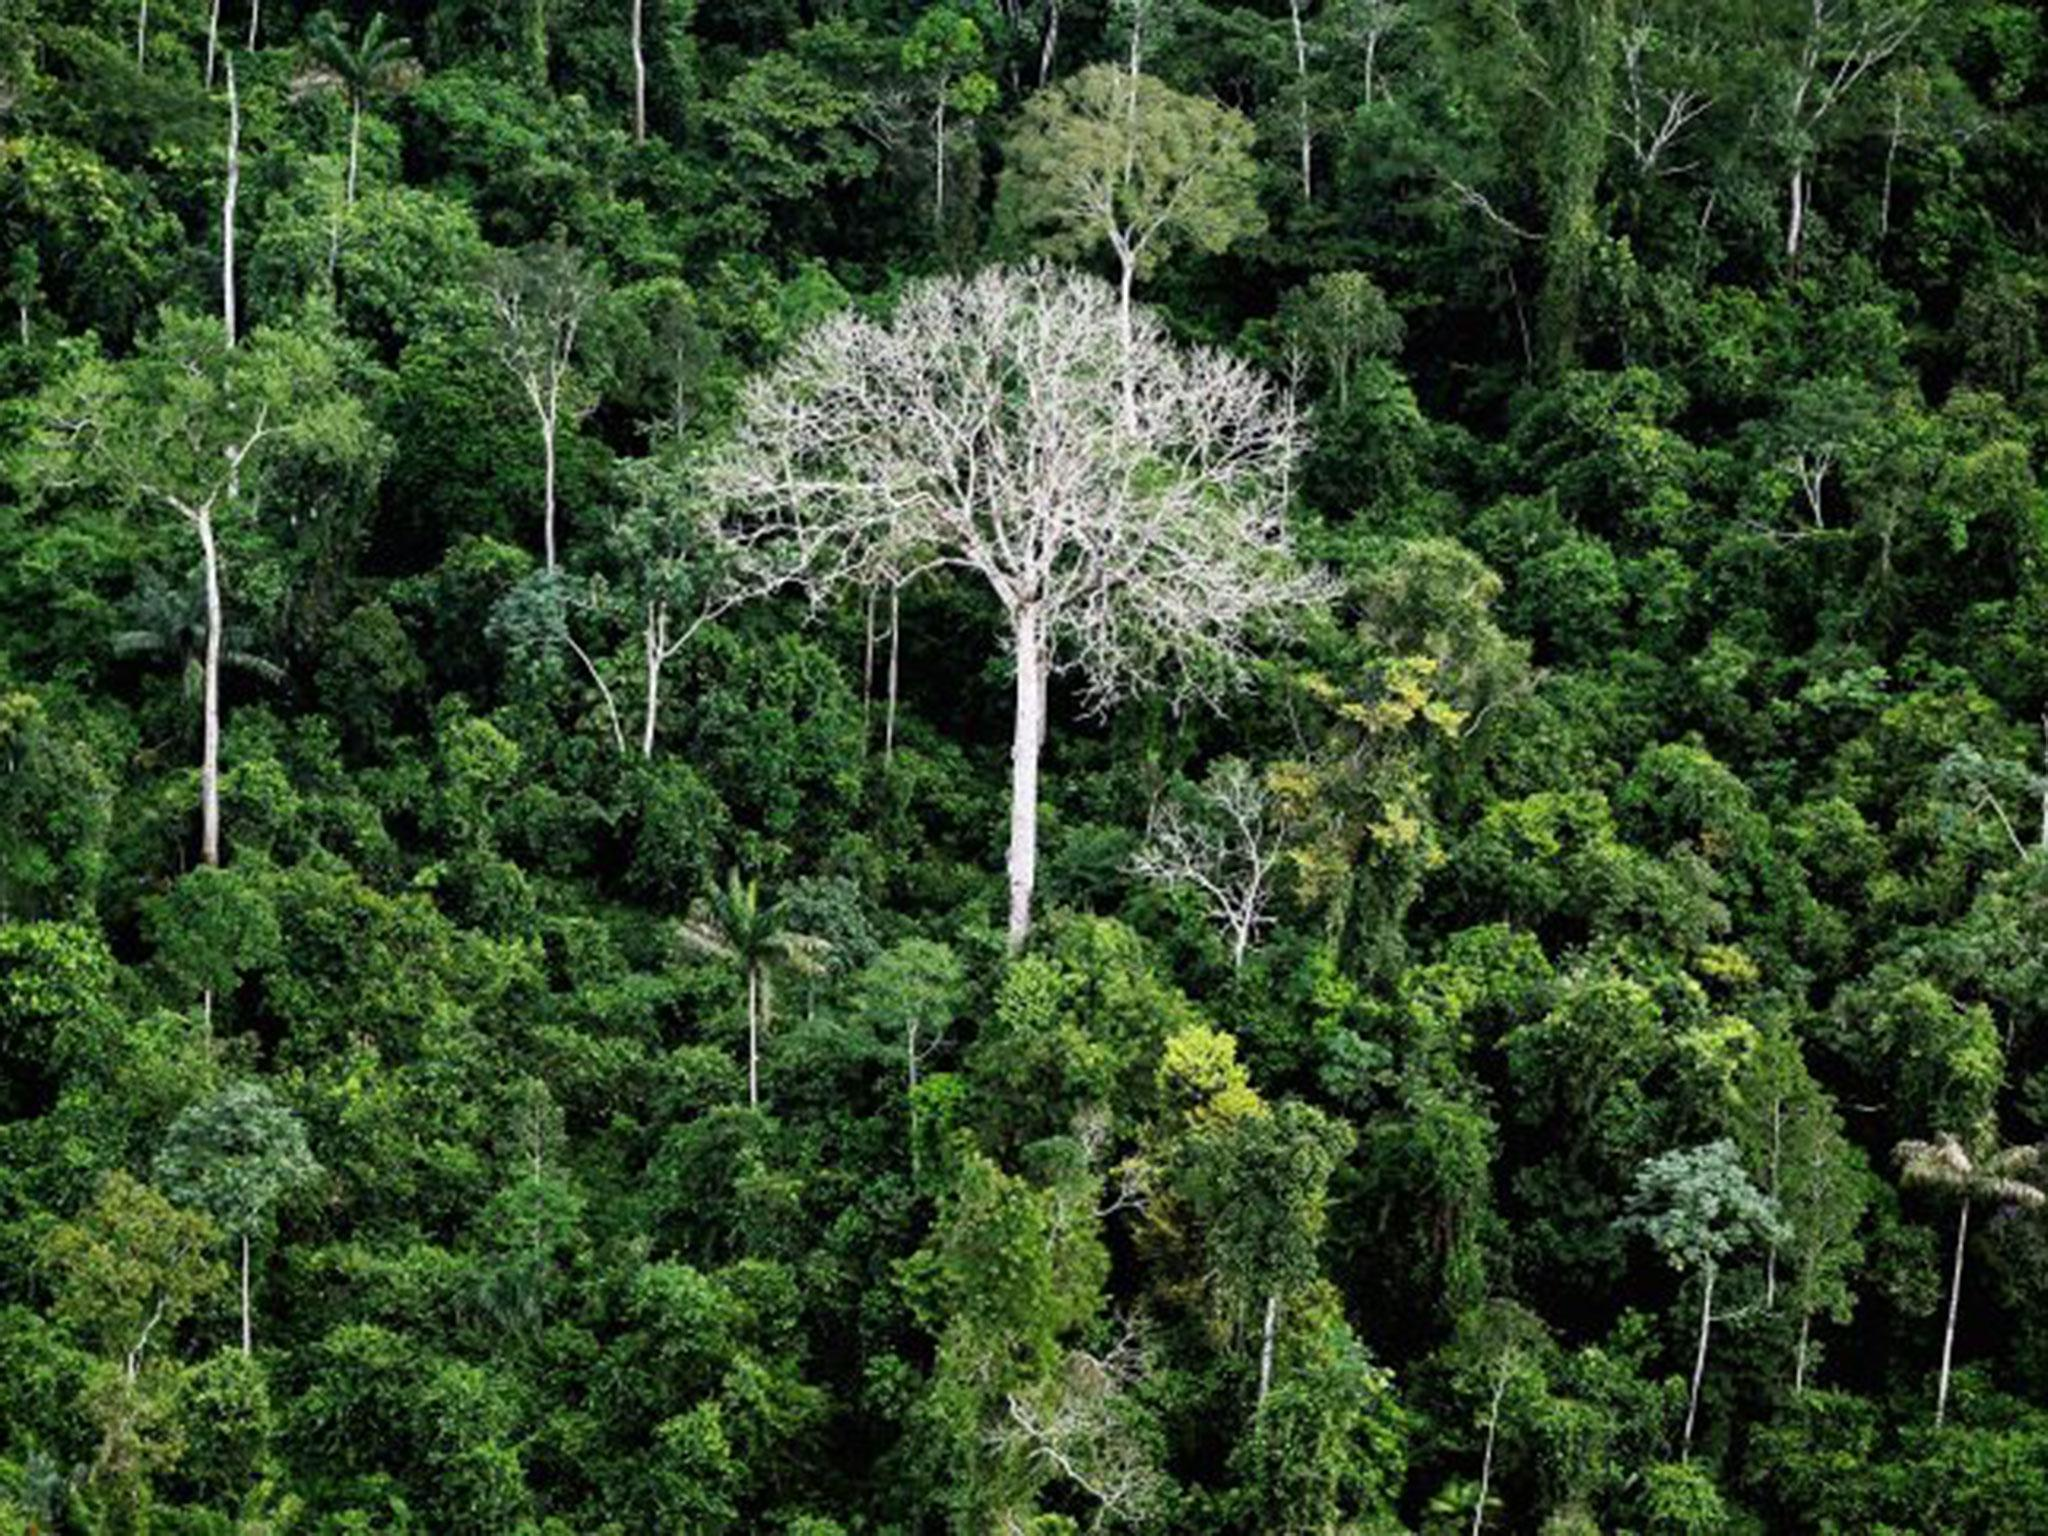 Brazil to open up 860,000 acres of protected Amazon rainforest to logging, mining and farming